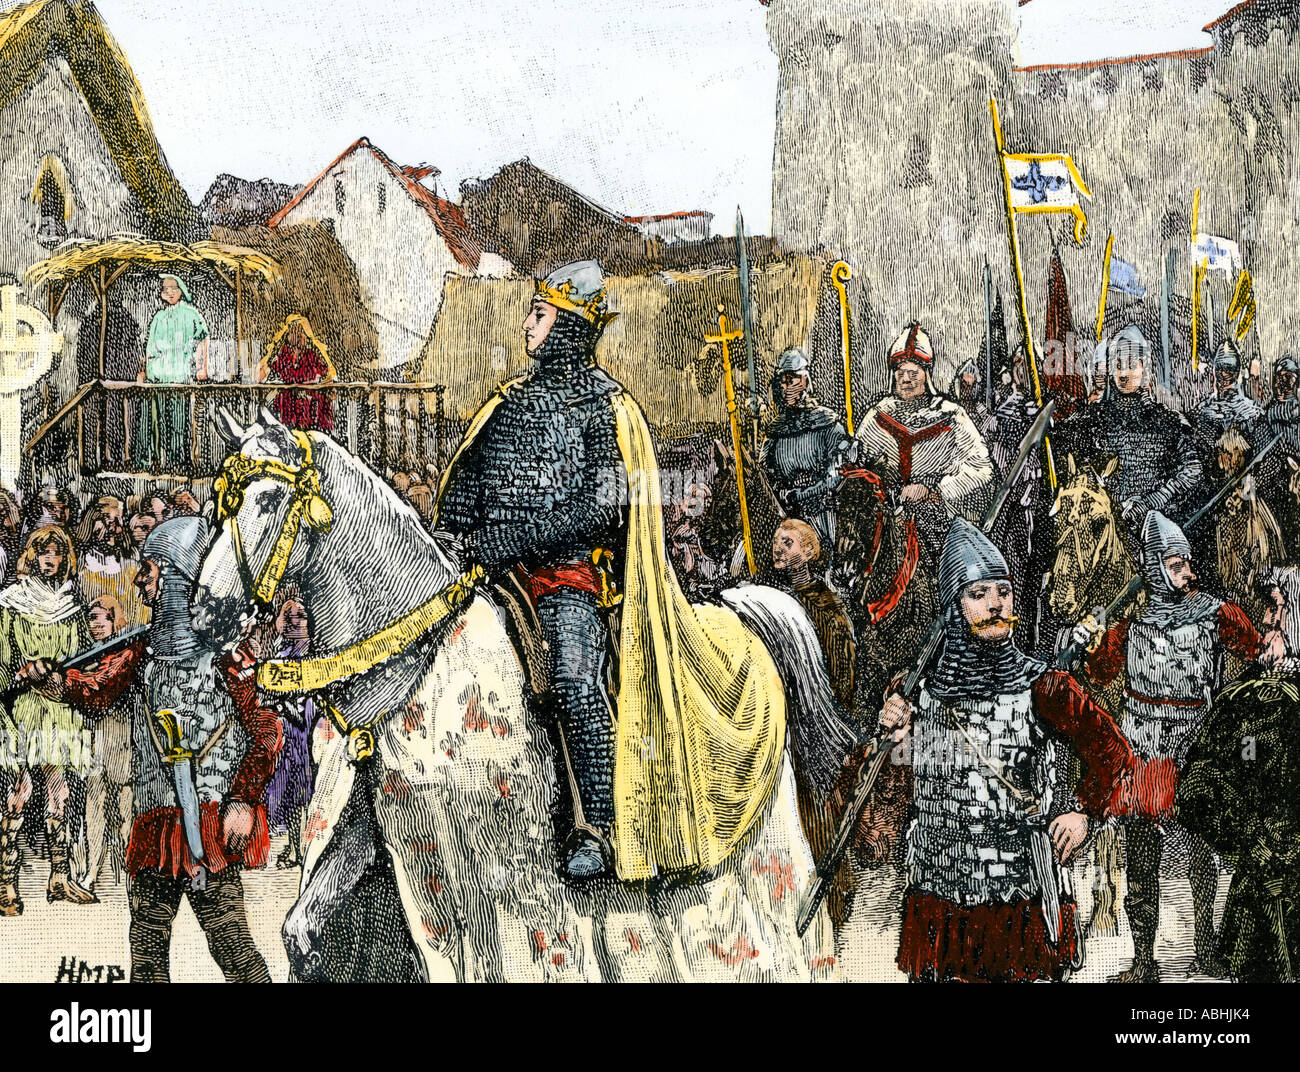 William the Conqueror and his army entering London in triumph after the Norman Invasion 1066. Hand-colored woodcut - Stock Image